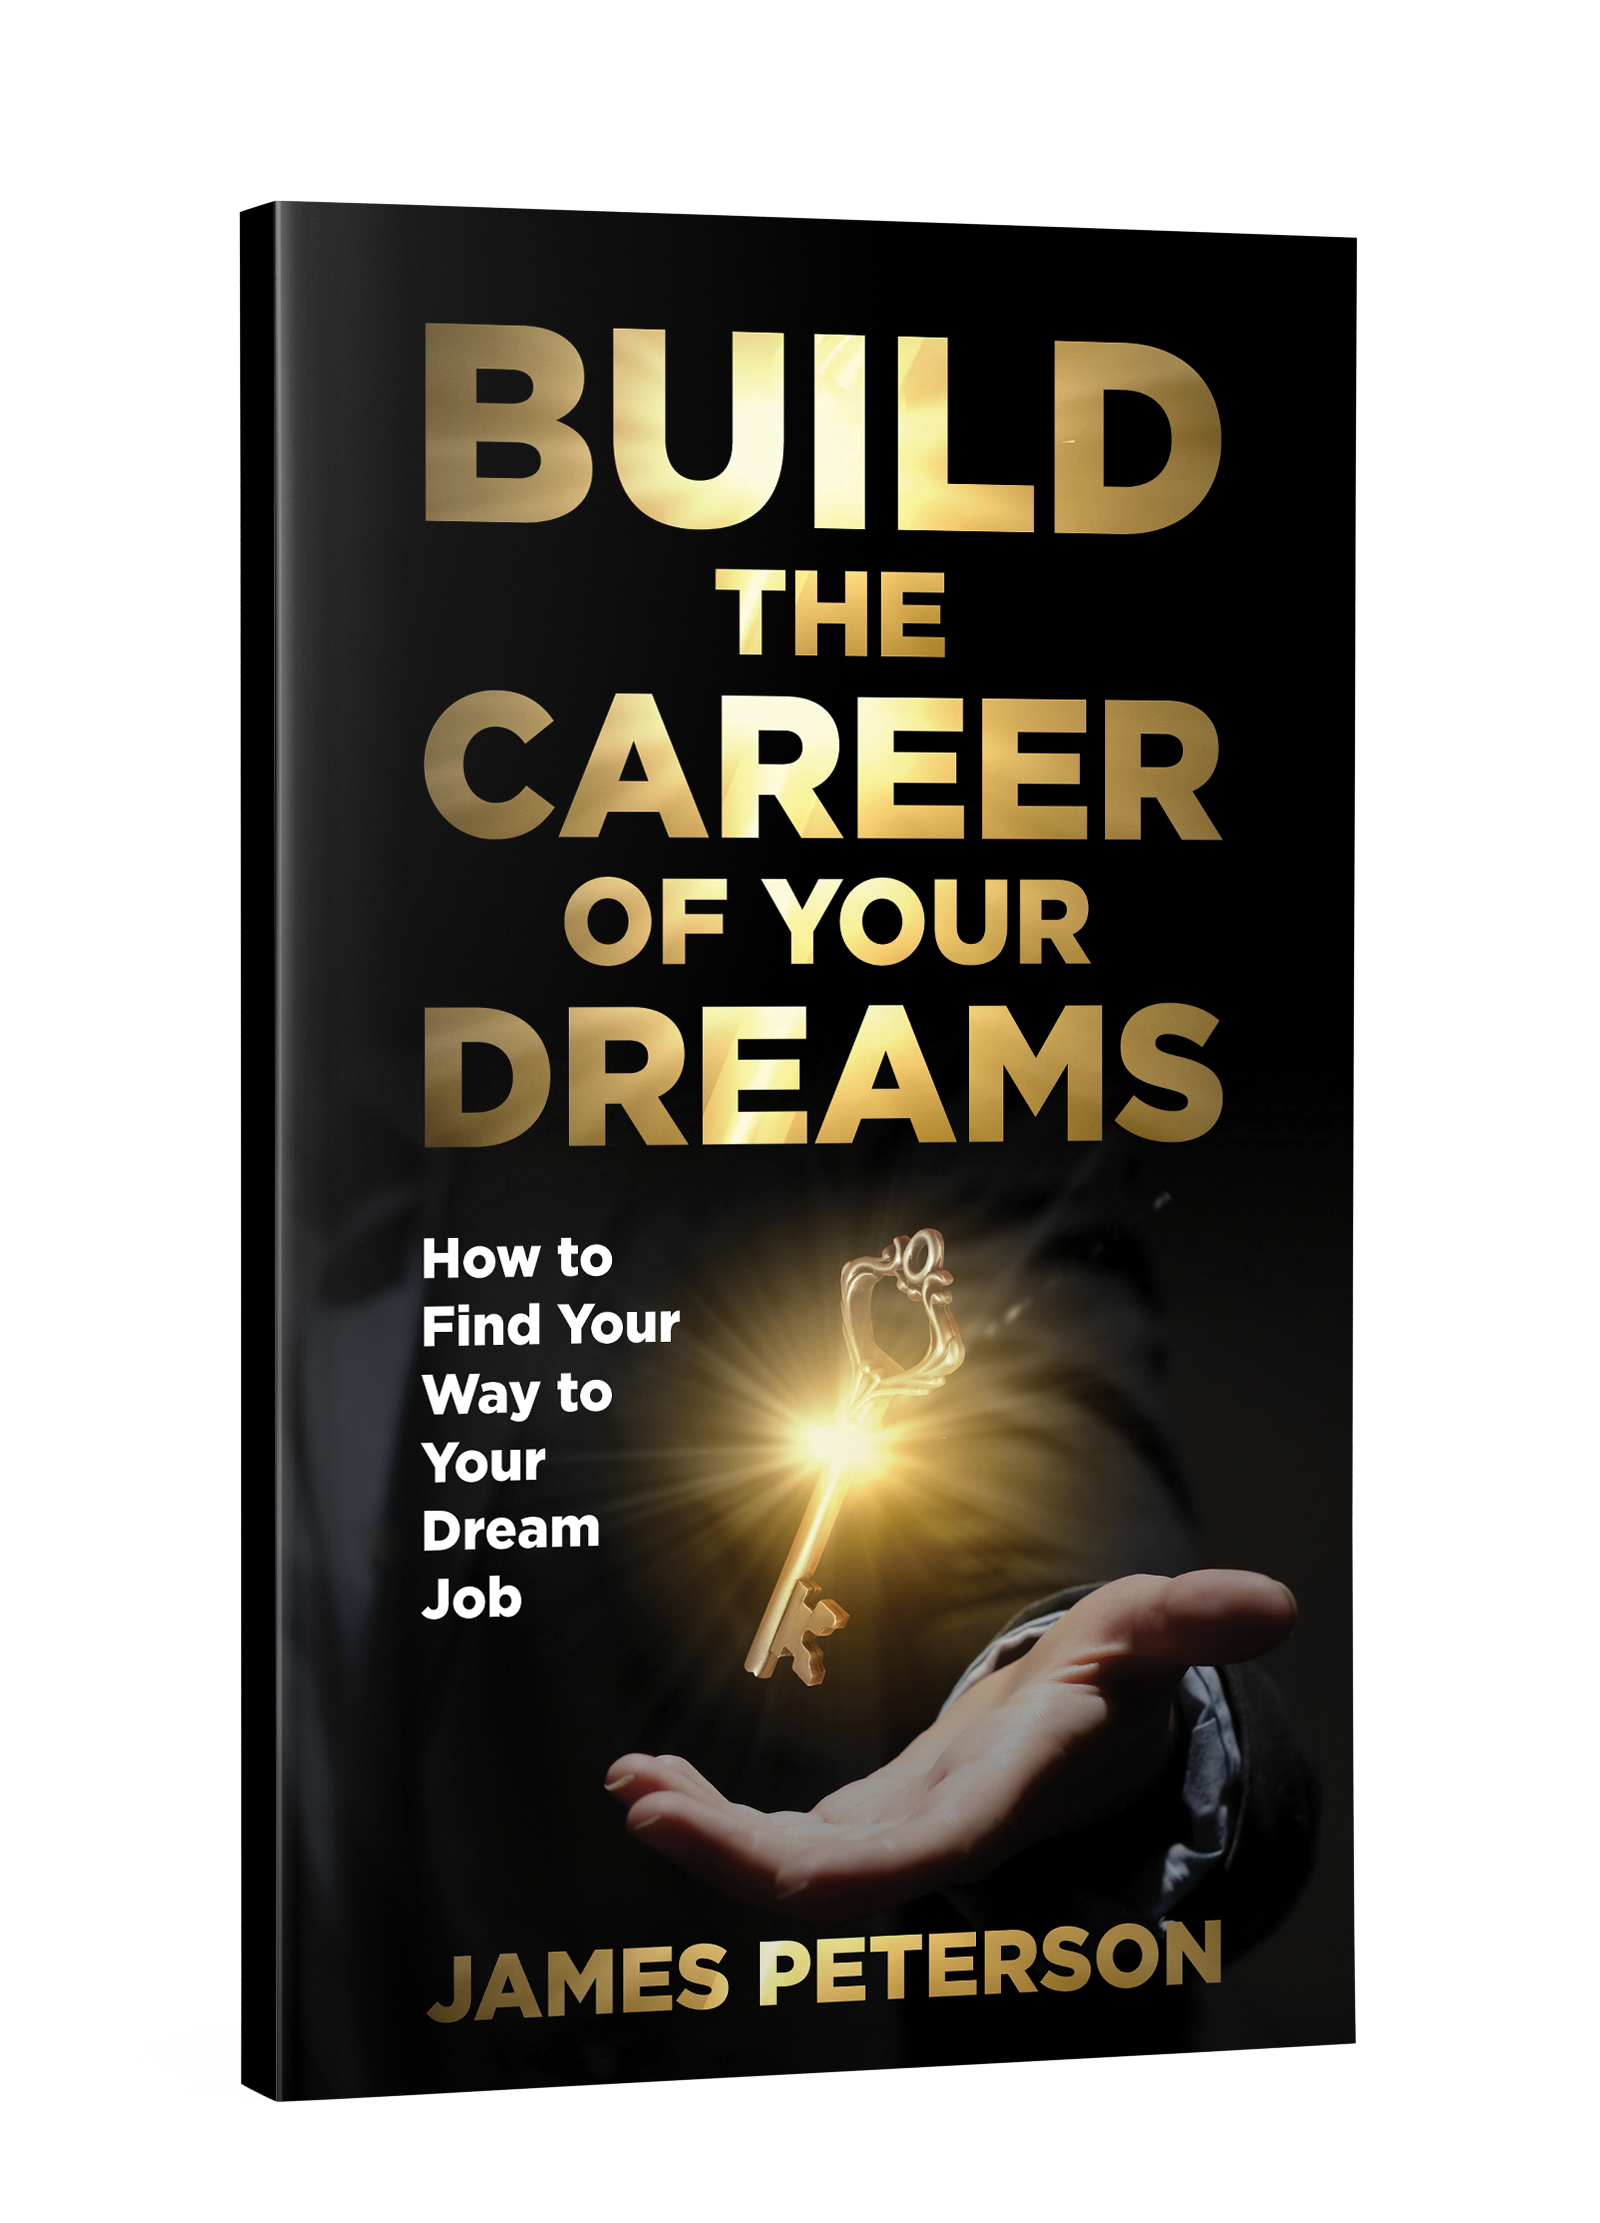 Build The Career of Your Dreams (Paperback)